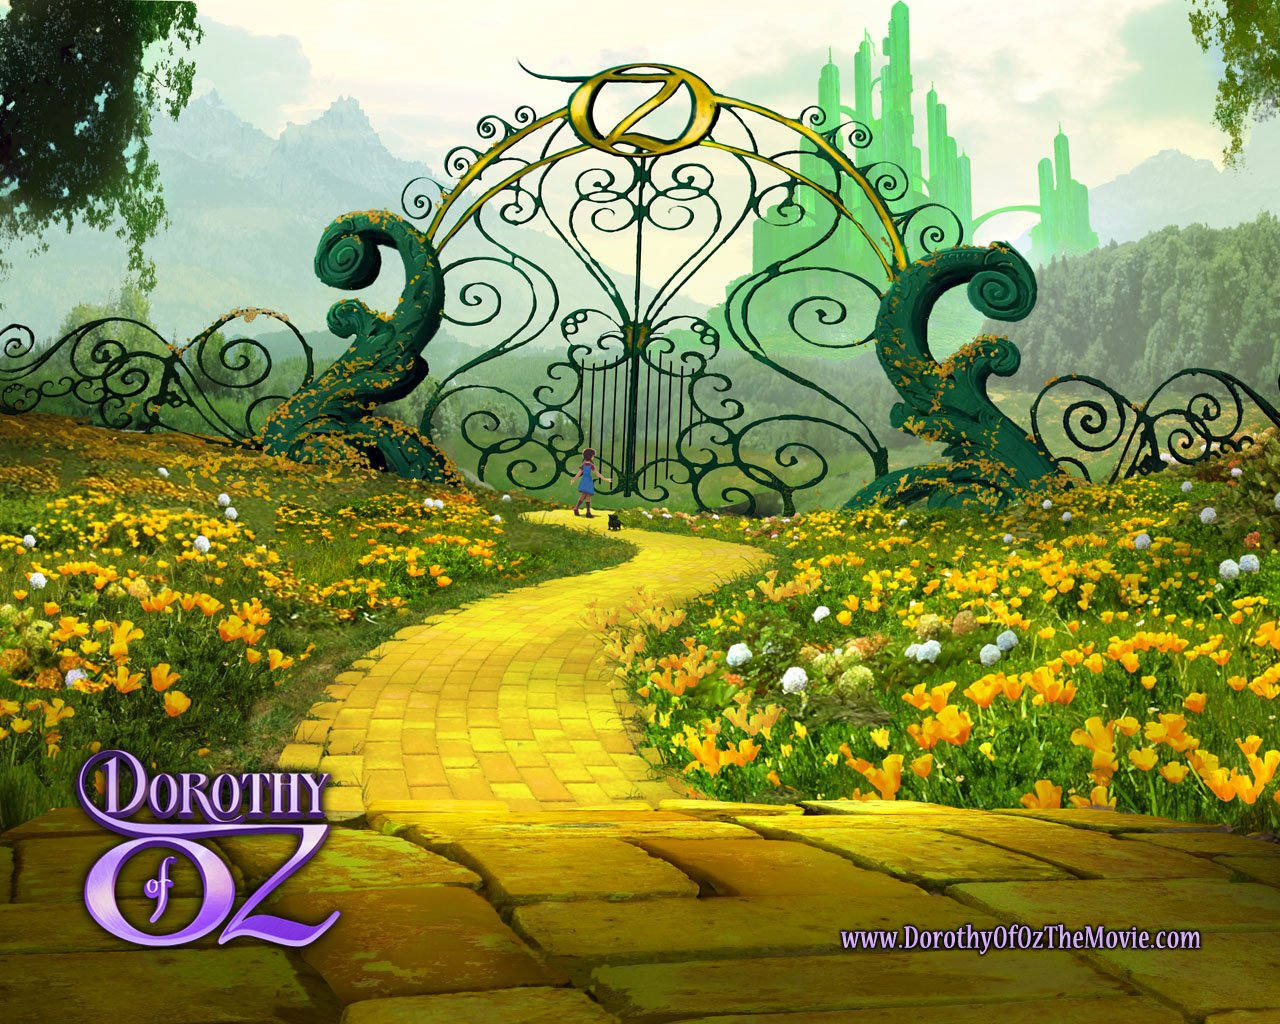 Wizard Of Oz Emerald City Wallpaper Dorothy of oz the movie 1280x1024